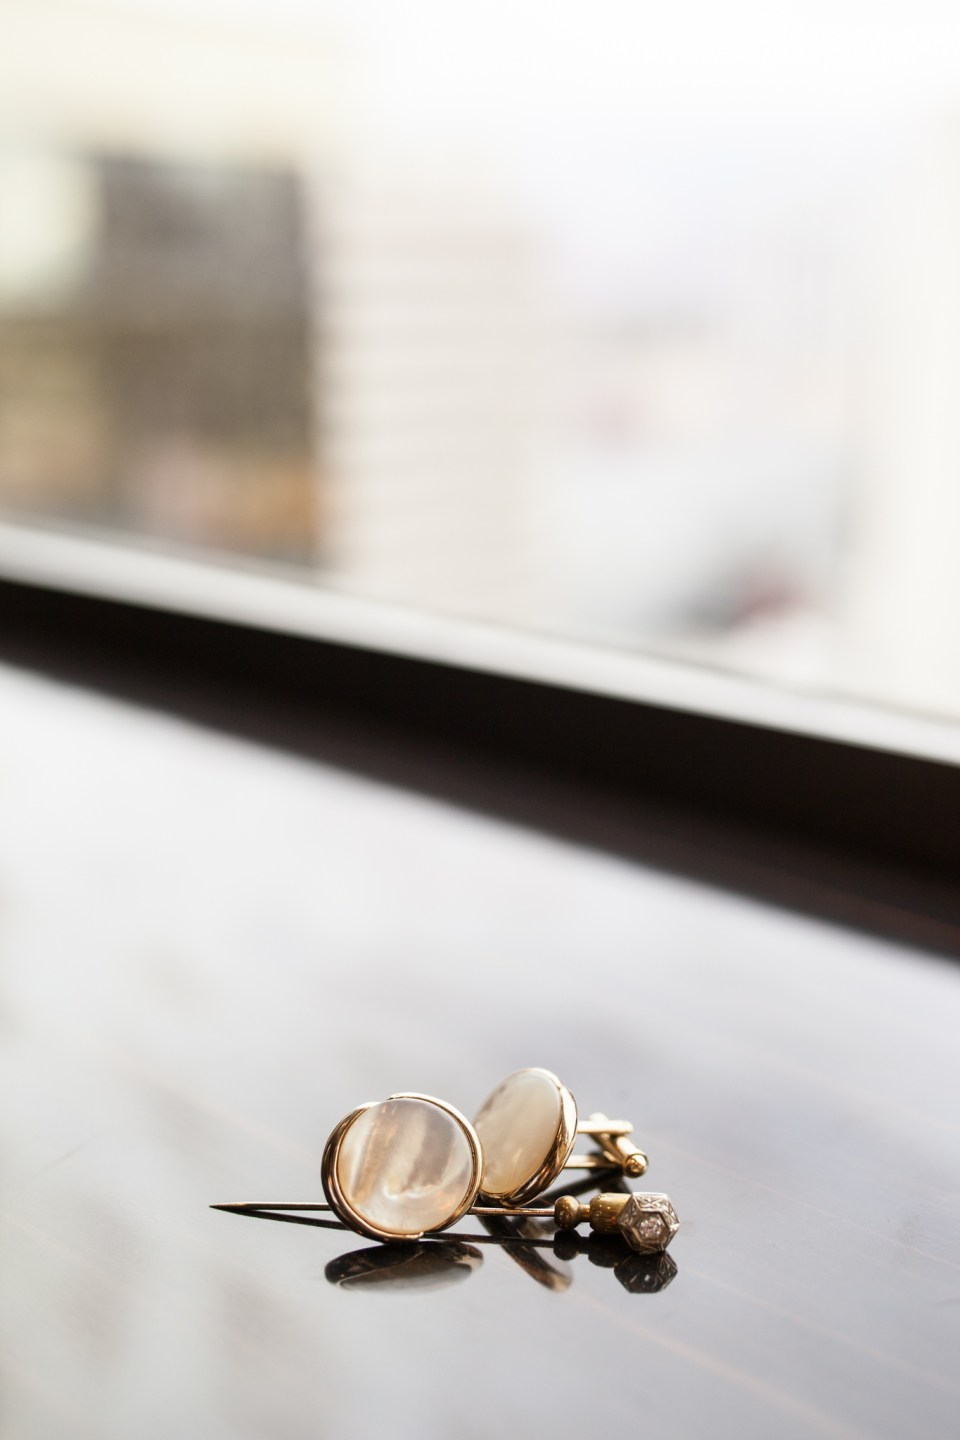 gold and pearl cuff links